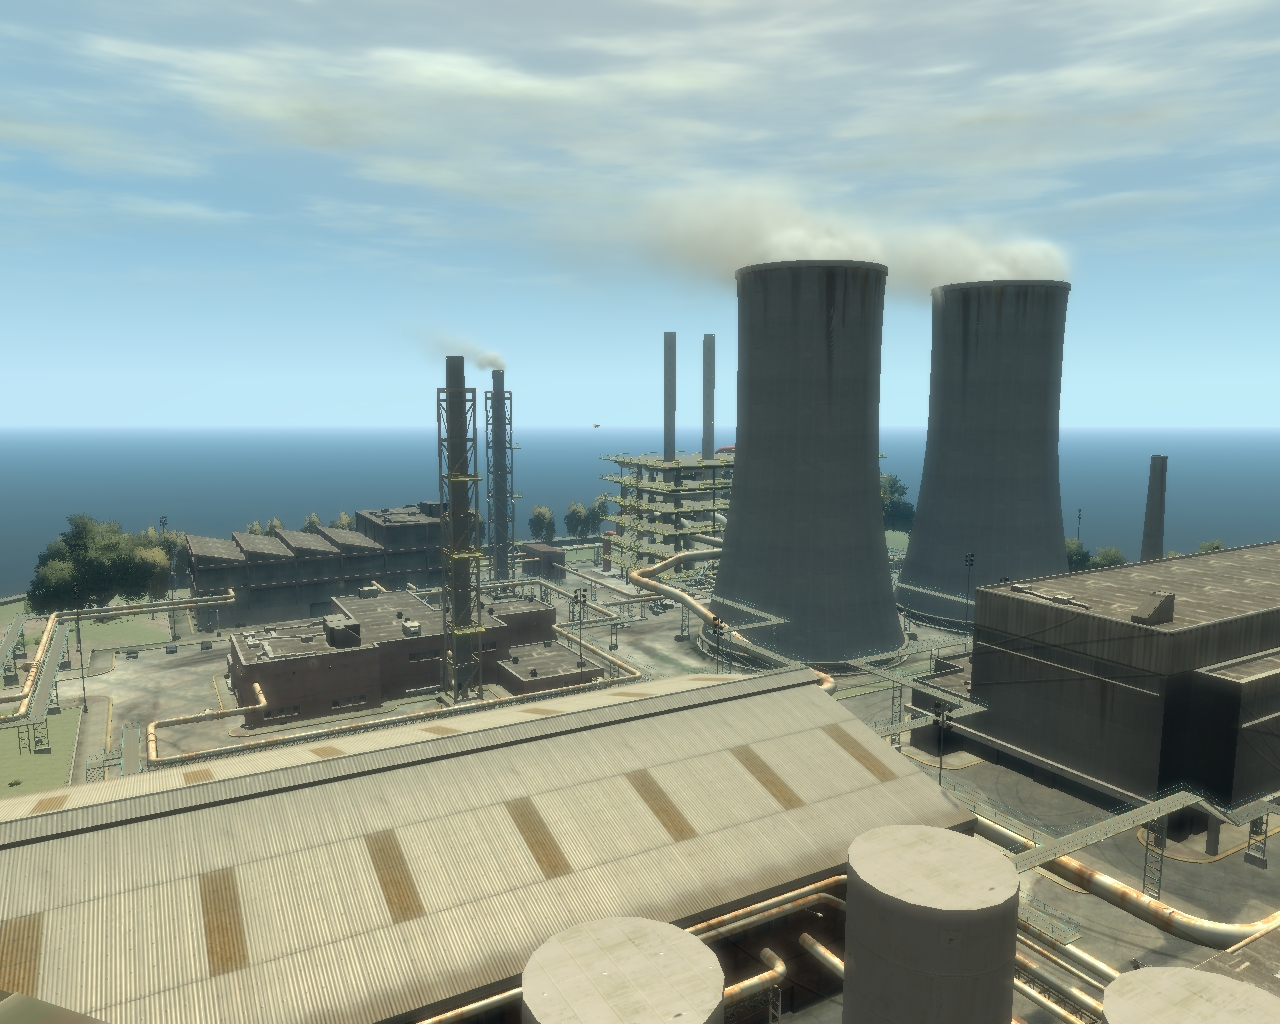 Acter Nuclear Power Plant